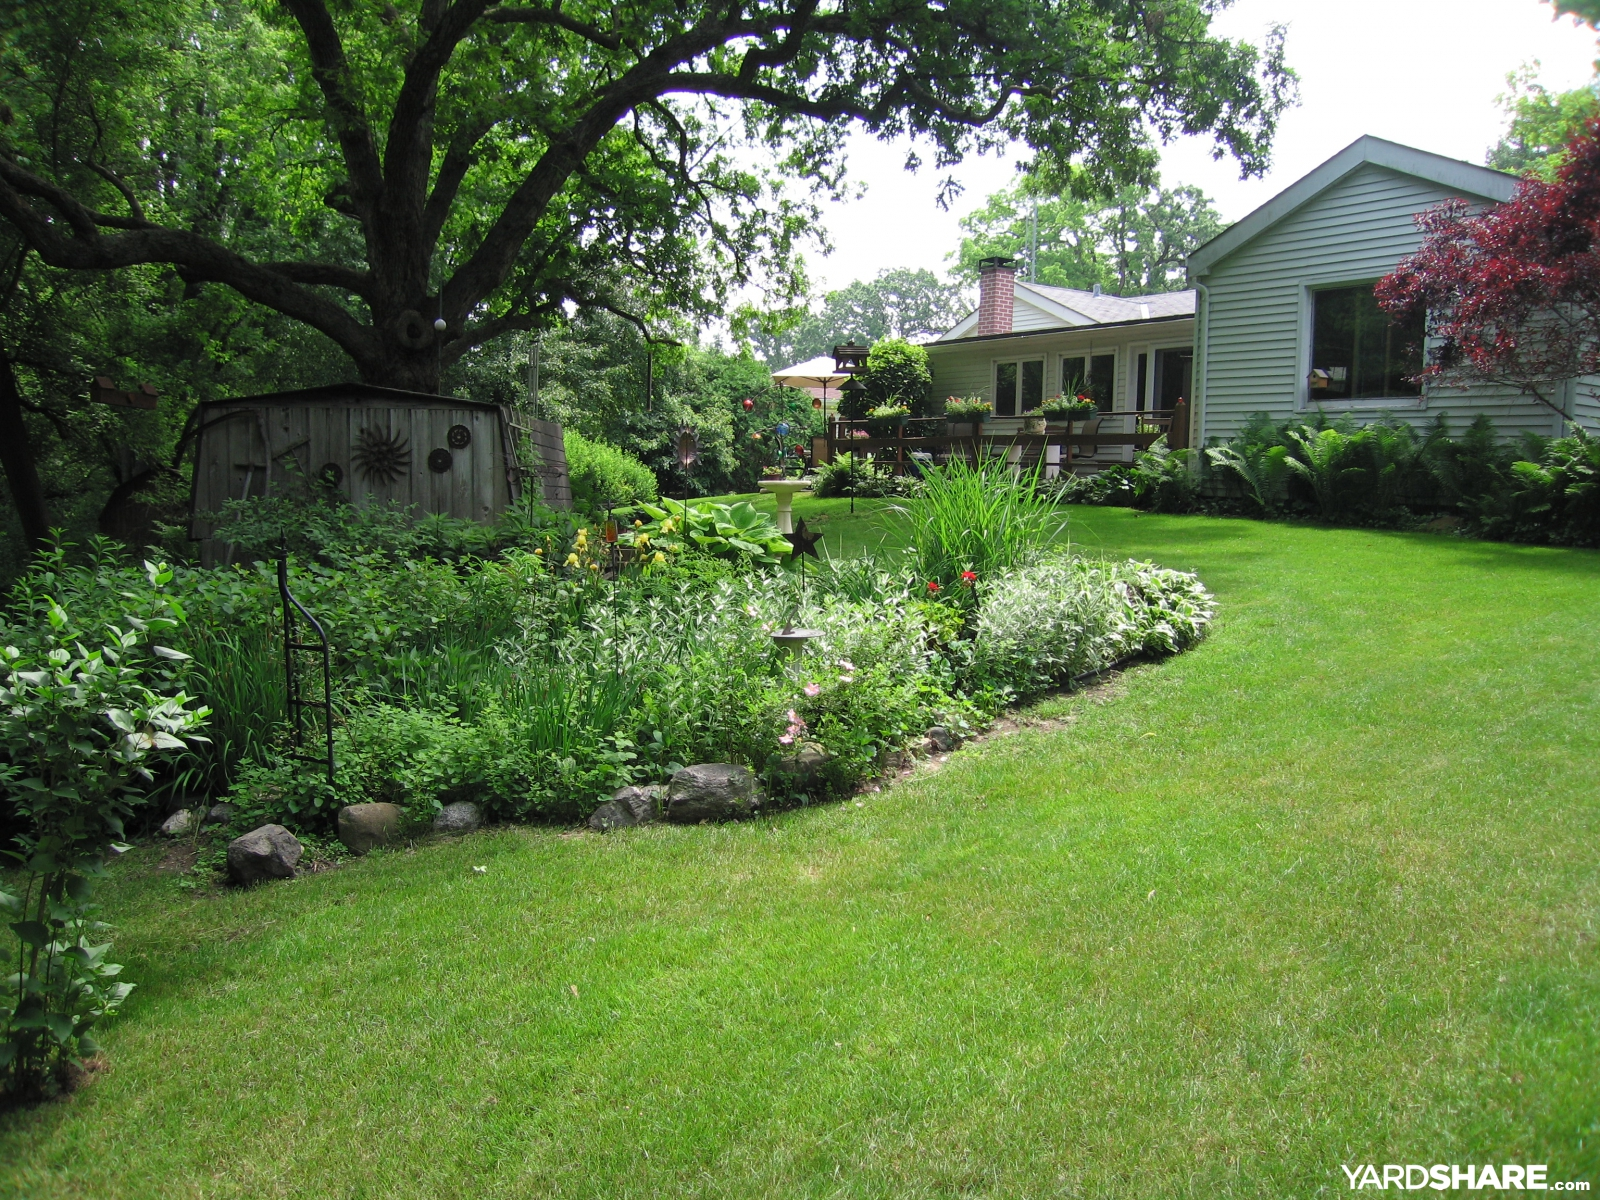 Landscaping ideas backyard at whispering oaks for Ideas for landscaping large areas